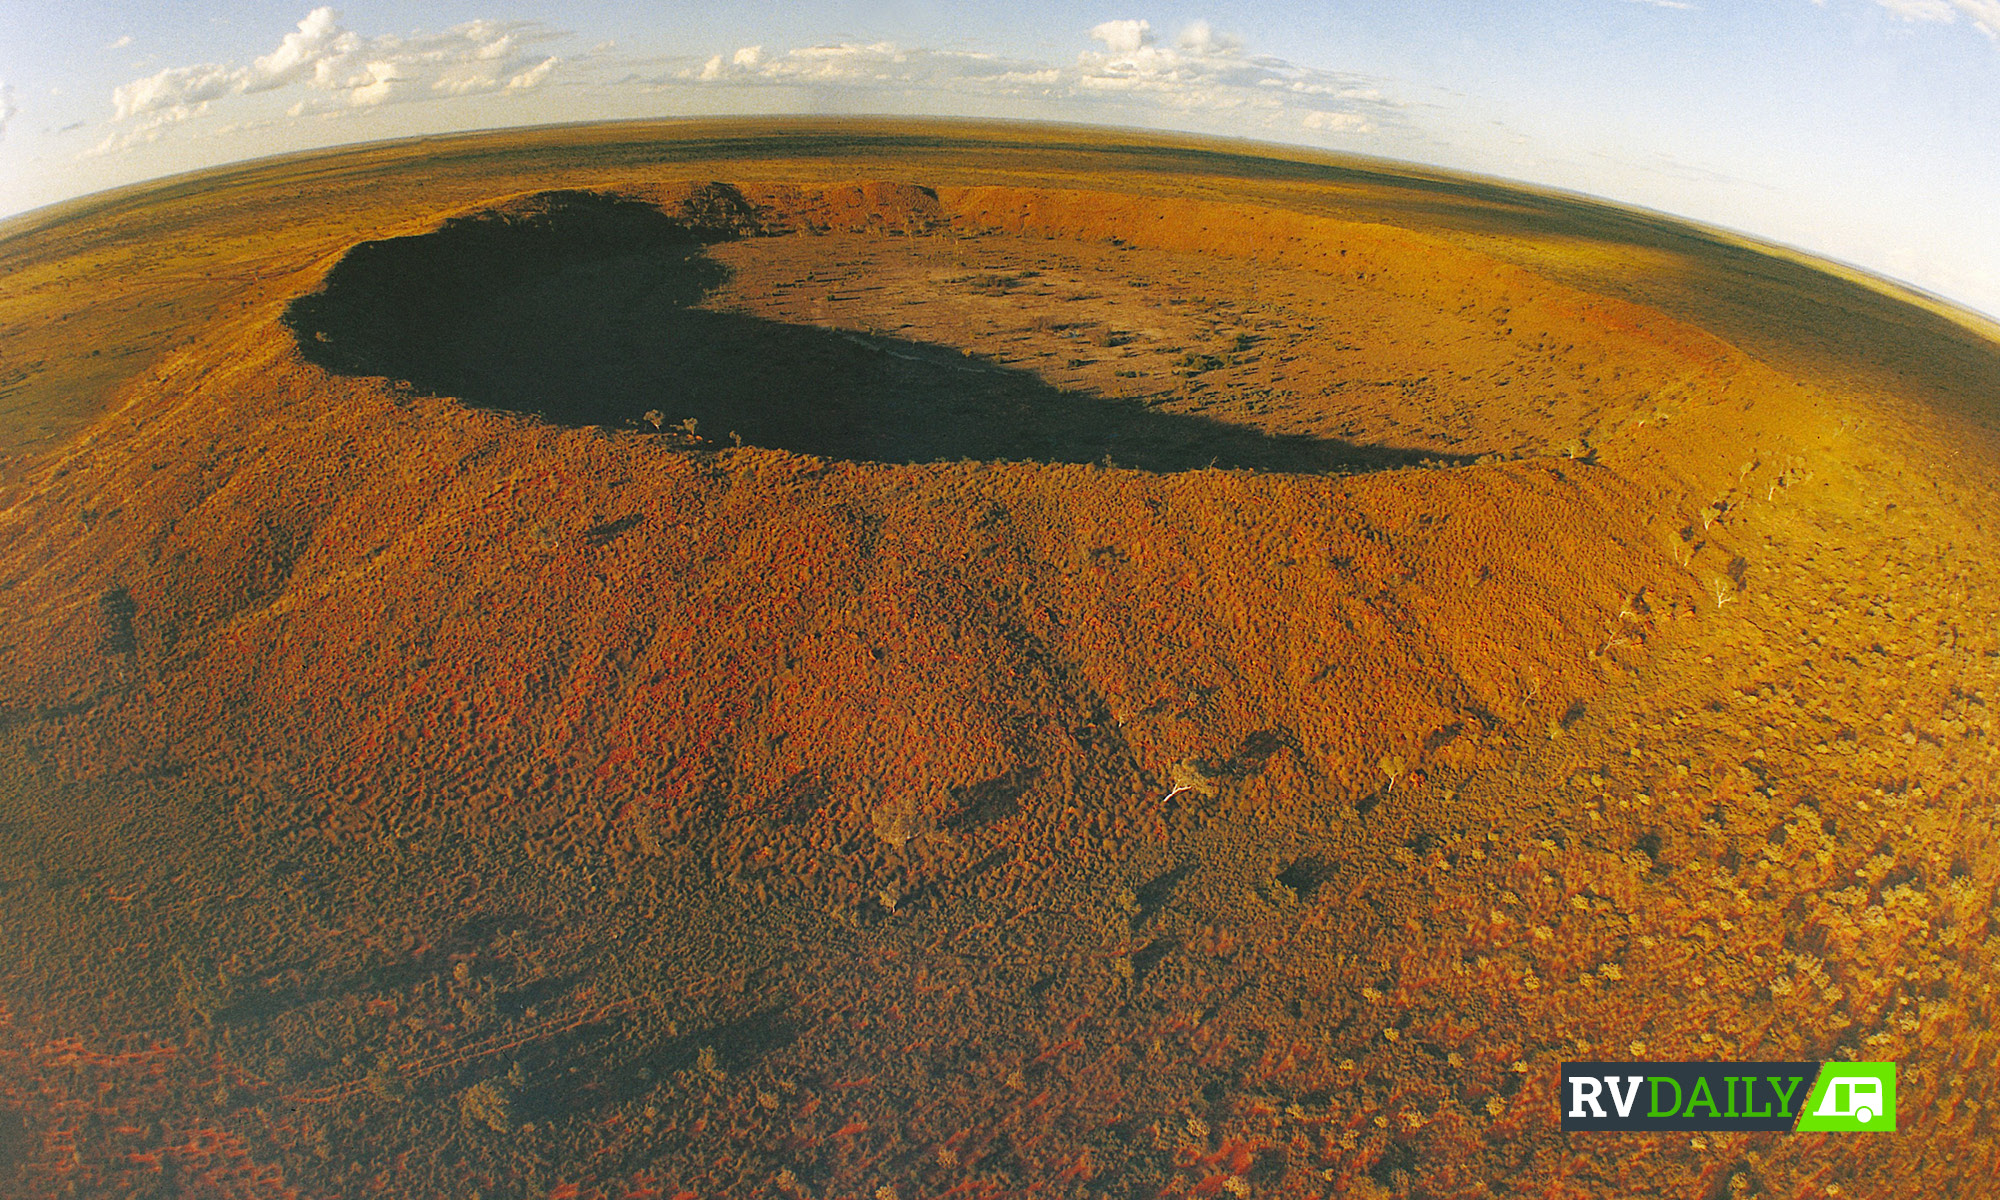 Five Australian meteorite craters you can actually visit